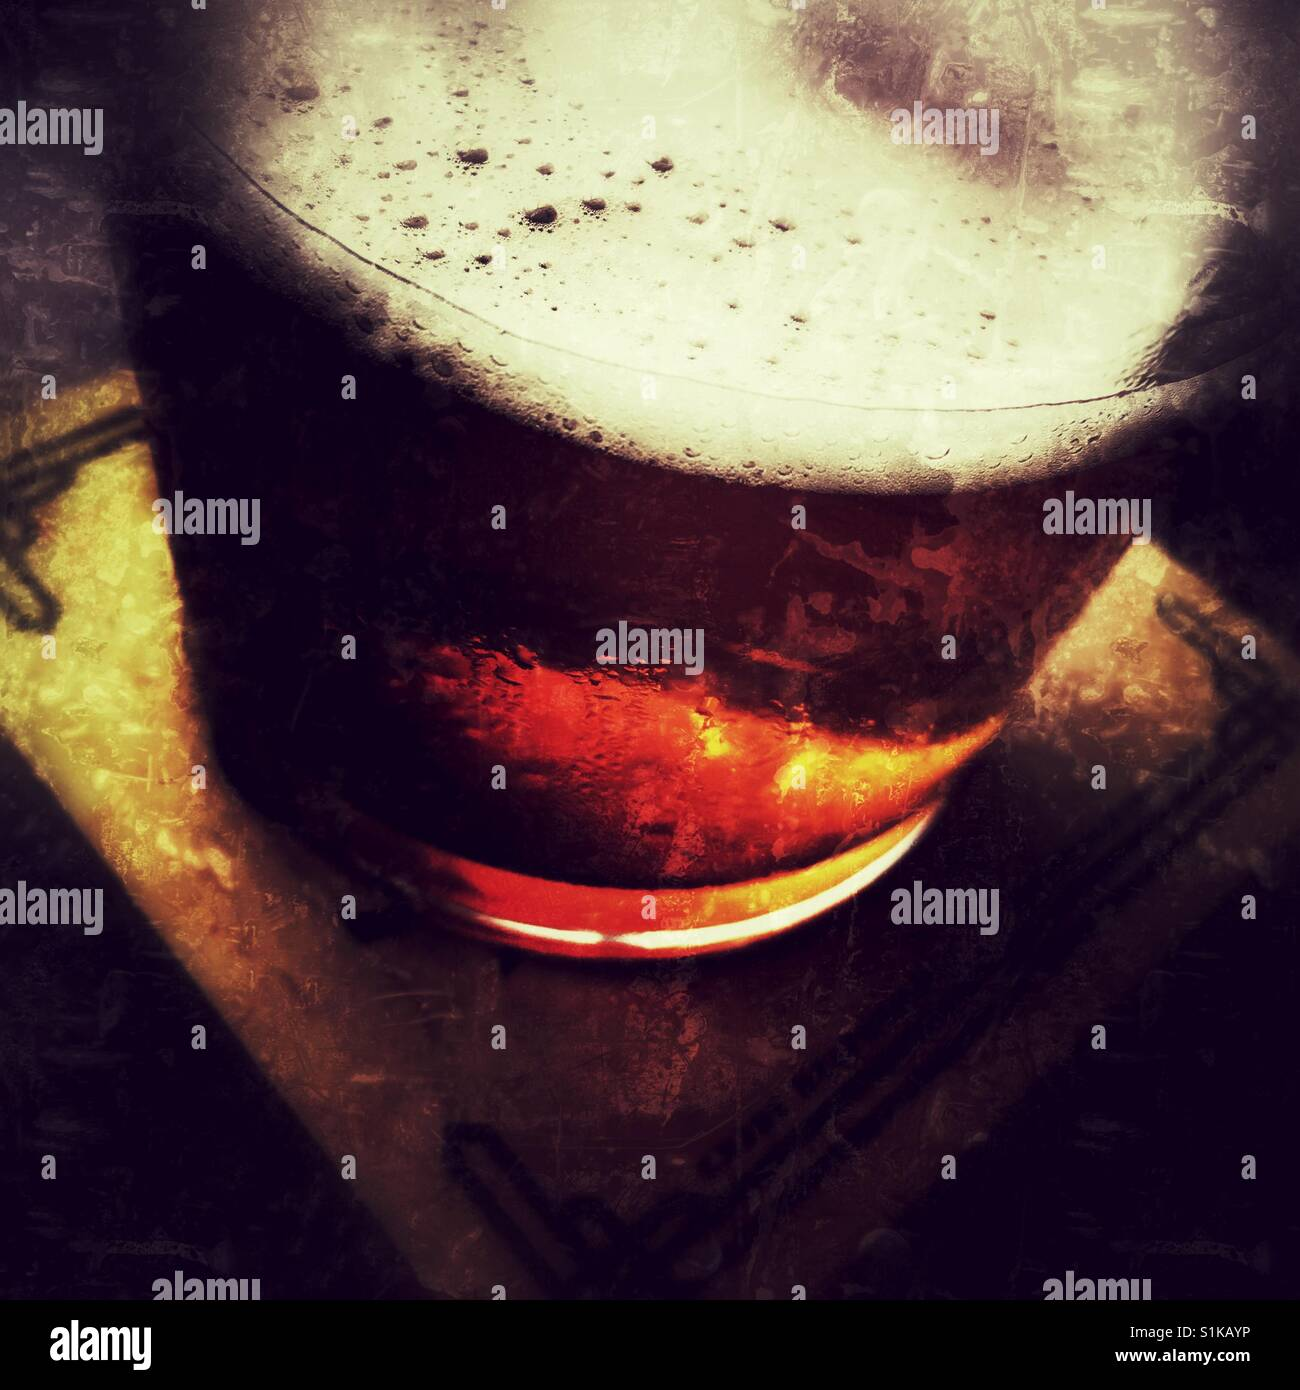 Pint of beer in a pub - Stock Image